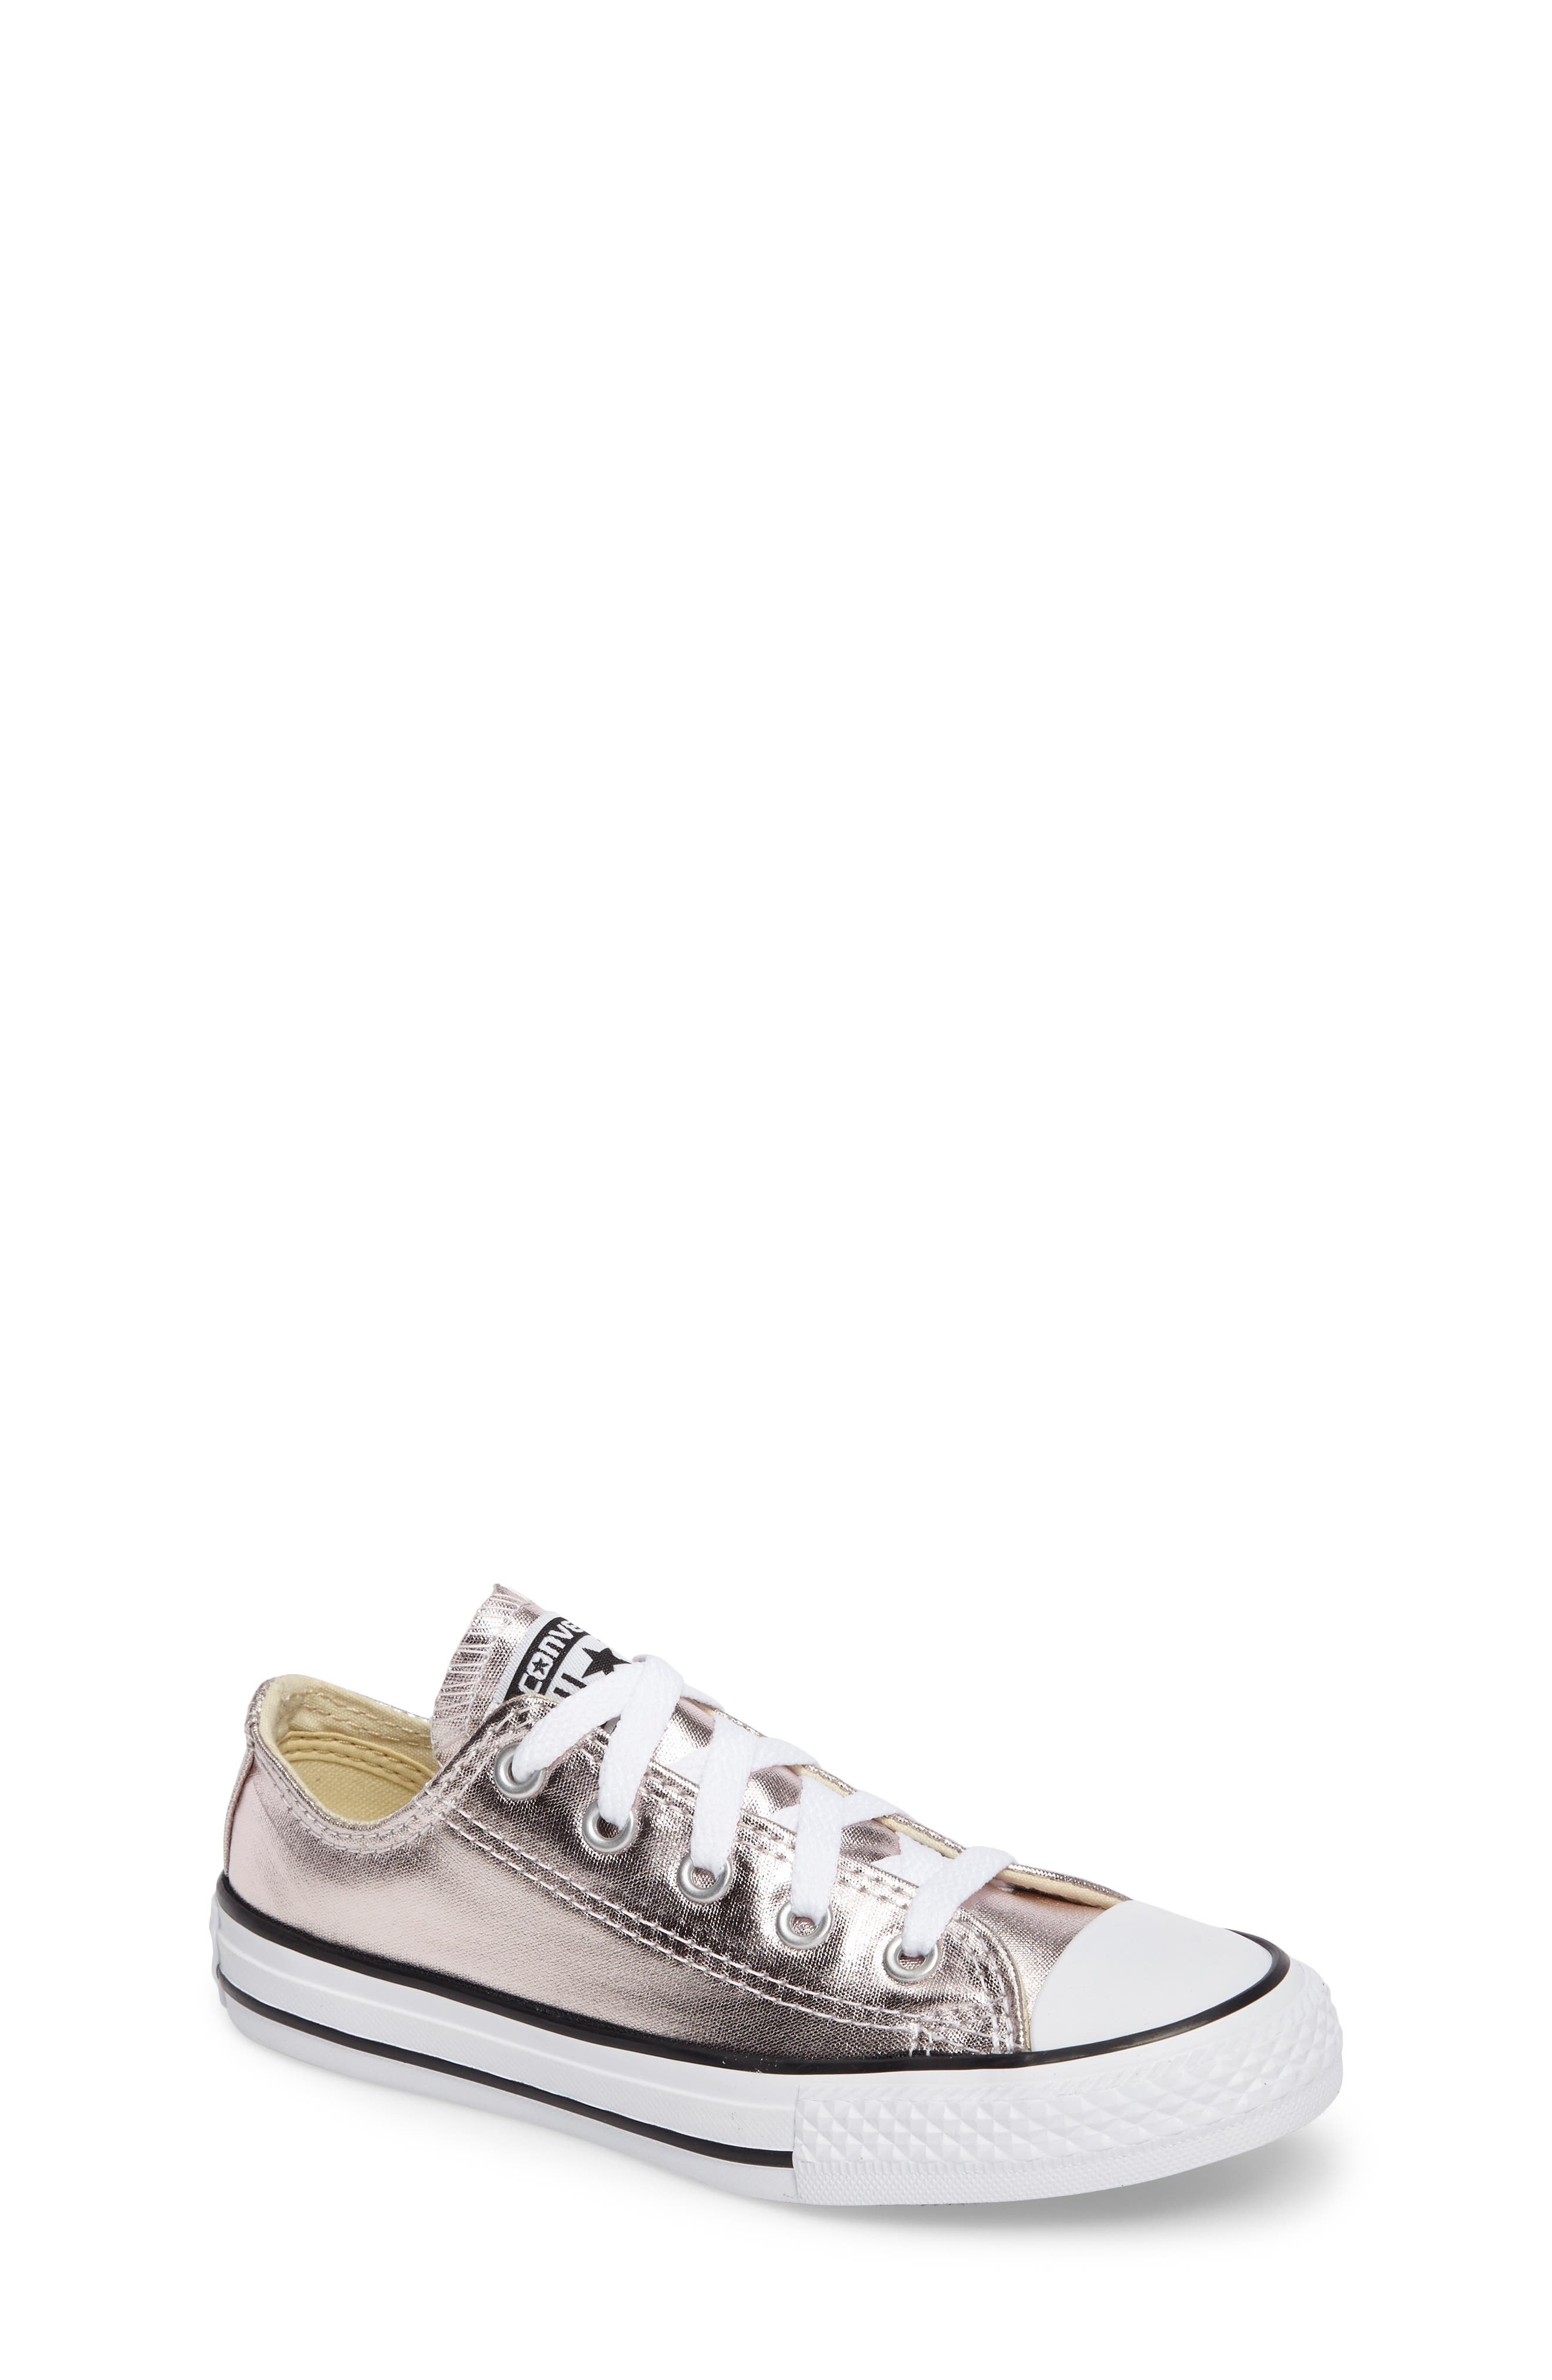 Alternate Image 1 Selected - Converse Chuck Taylor® All Star® Ox Metallic Low Top Sneaker (Toddler & Little Kid)